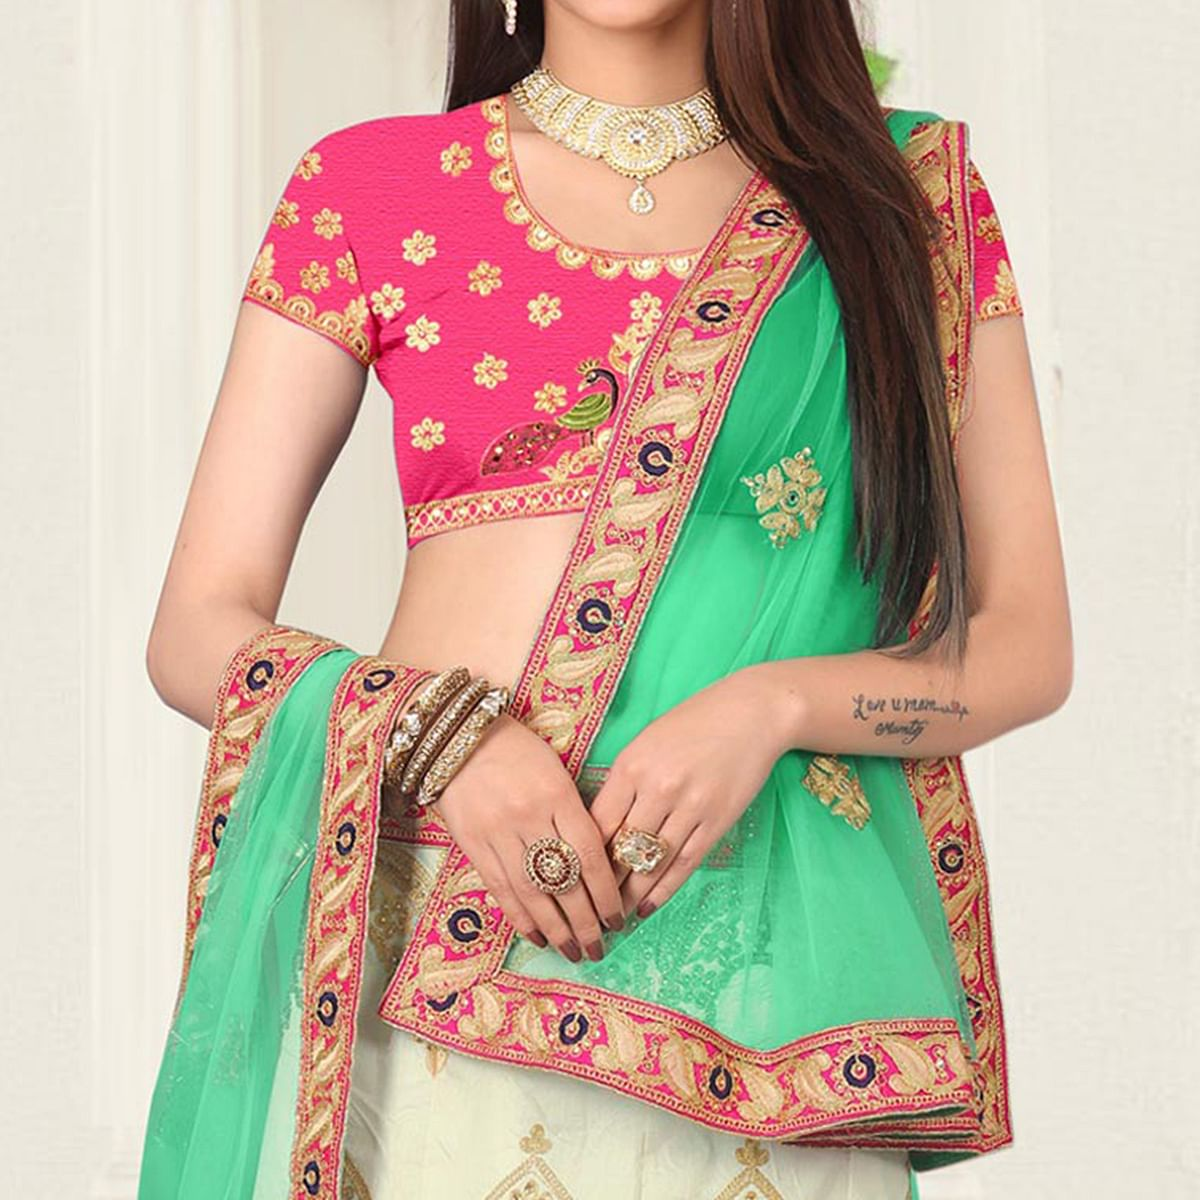 Groovy Cream Pink Colored Partywear Embroidered Banglori Silk Lehenga Choli